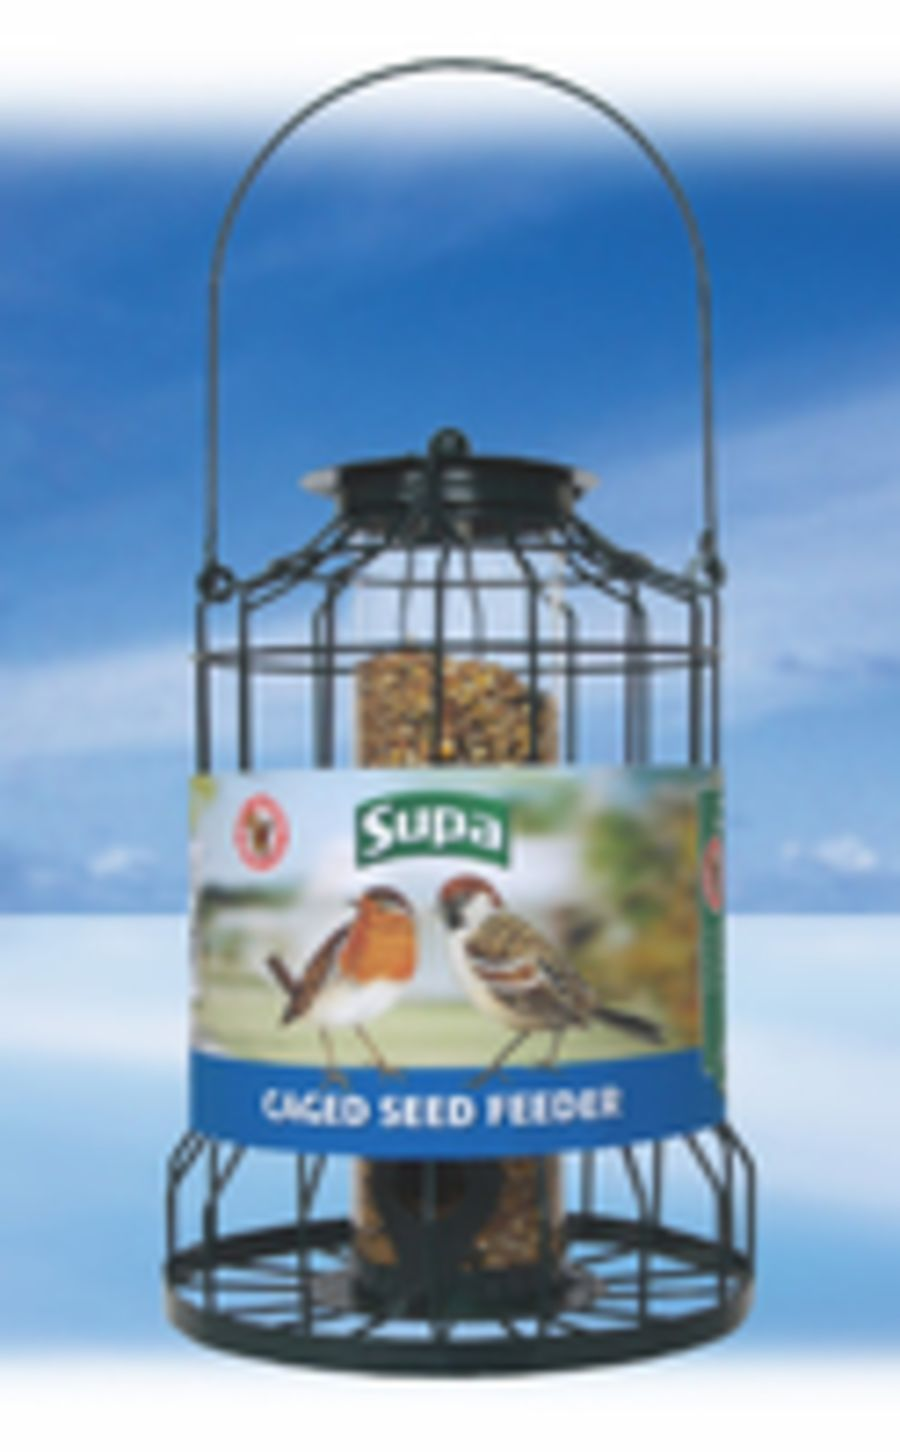 Supa Caged Seed Feeder